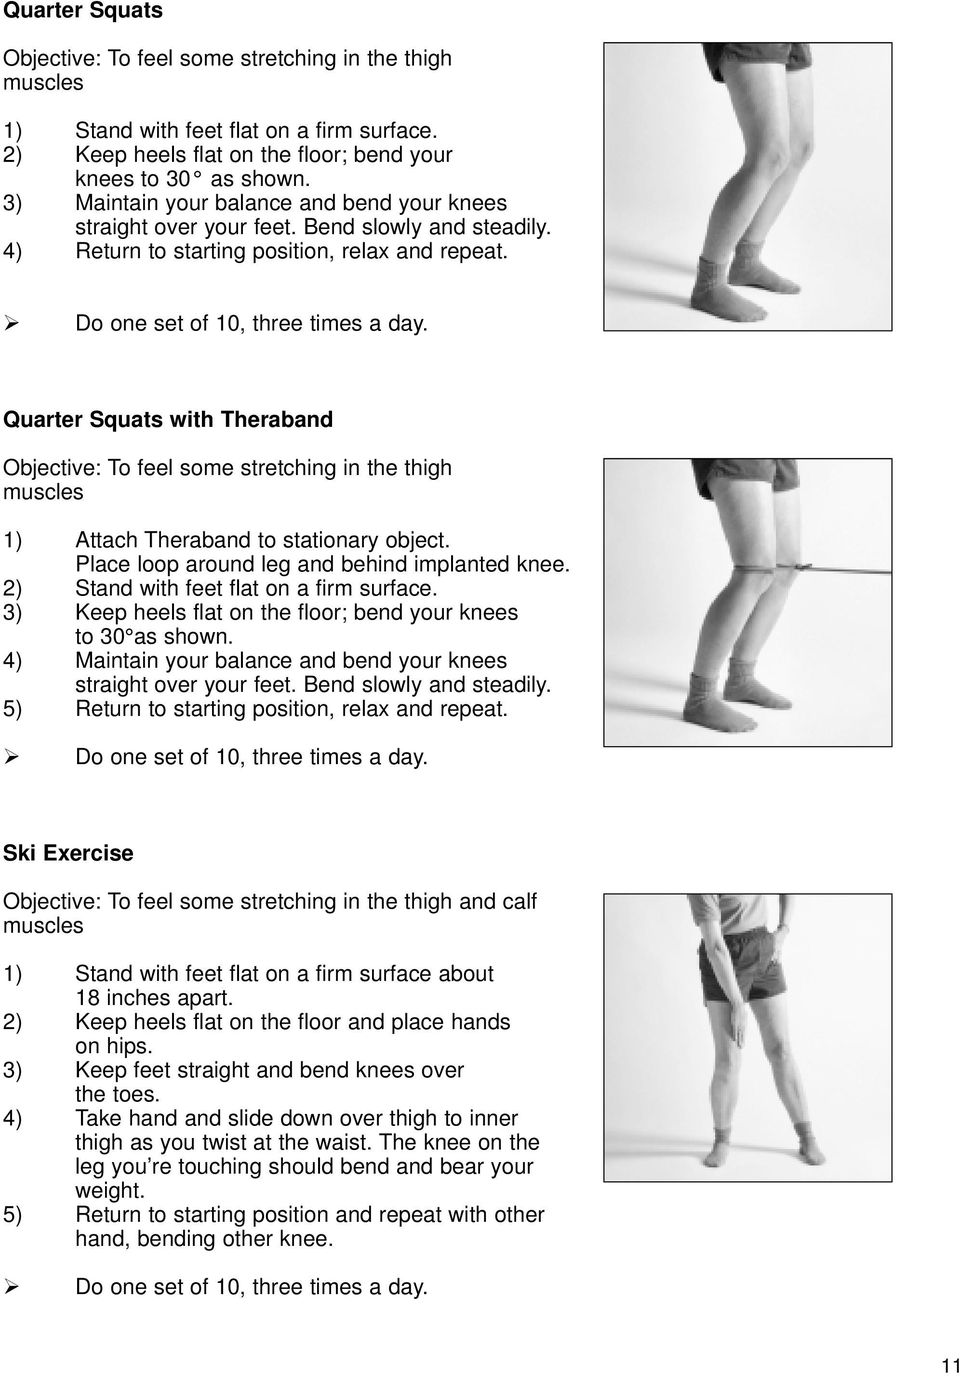 Quarter Squats with Theraband Objective: To feel some stretching in the thigh muscles 1) Attach Theraband to stationary object. Place loop around leg and behind implanted knee.